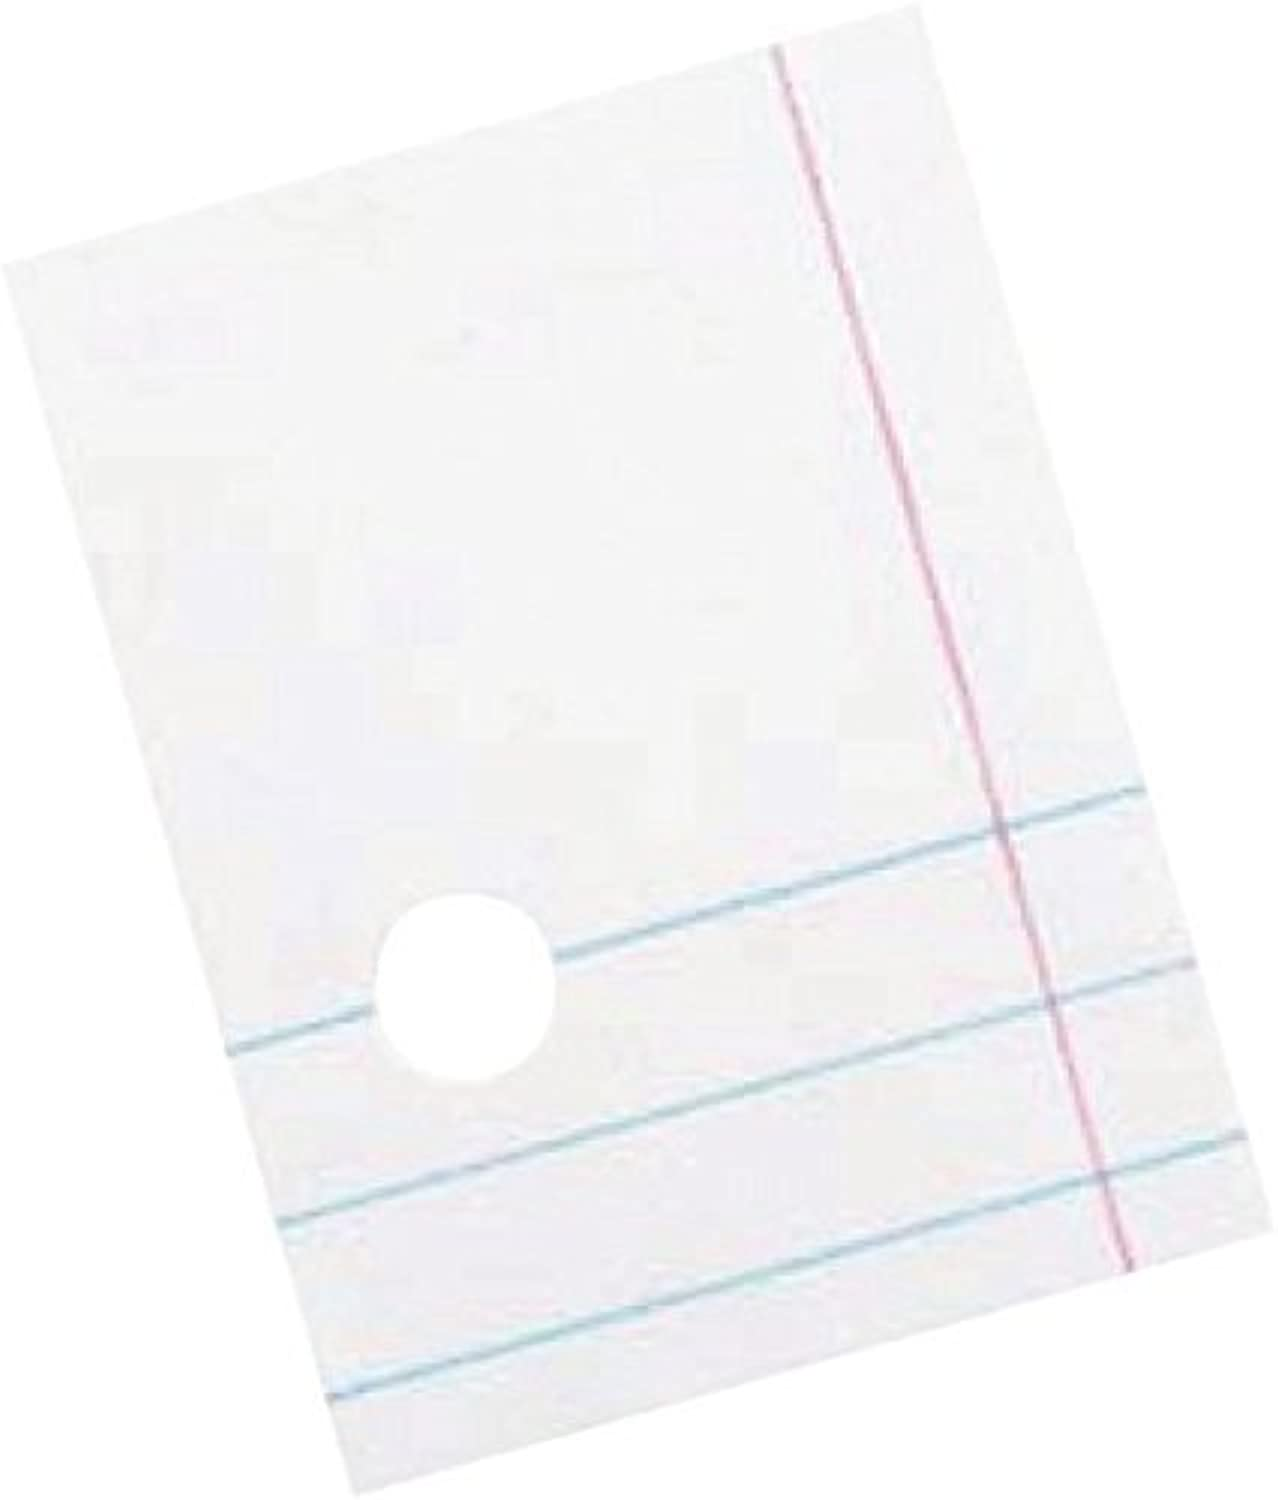 Pacon 038779 3Hole Punched Filler Paper with Margin, College Ruling, 81 2  x 11 , 16 lb, Bright White (Pack of 500) by Pacon